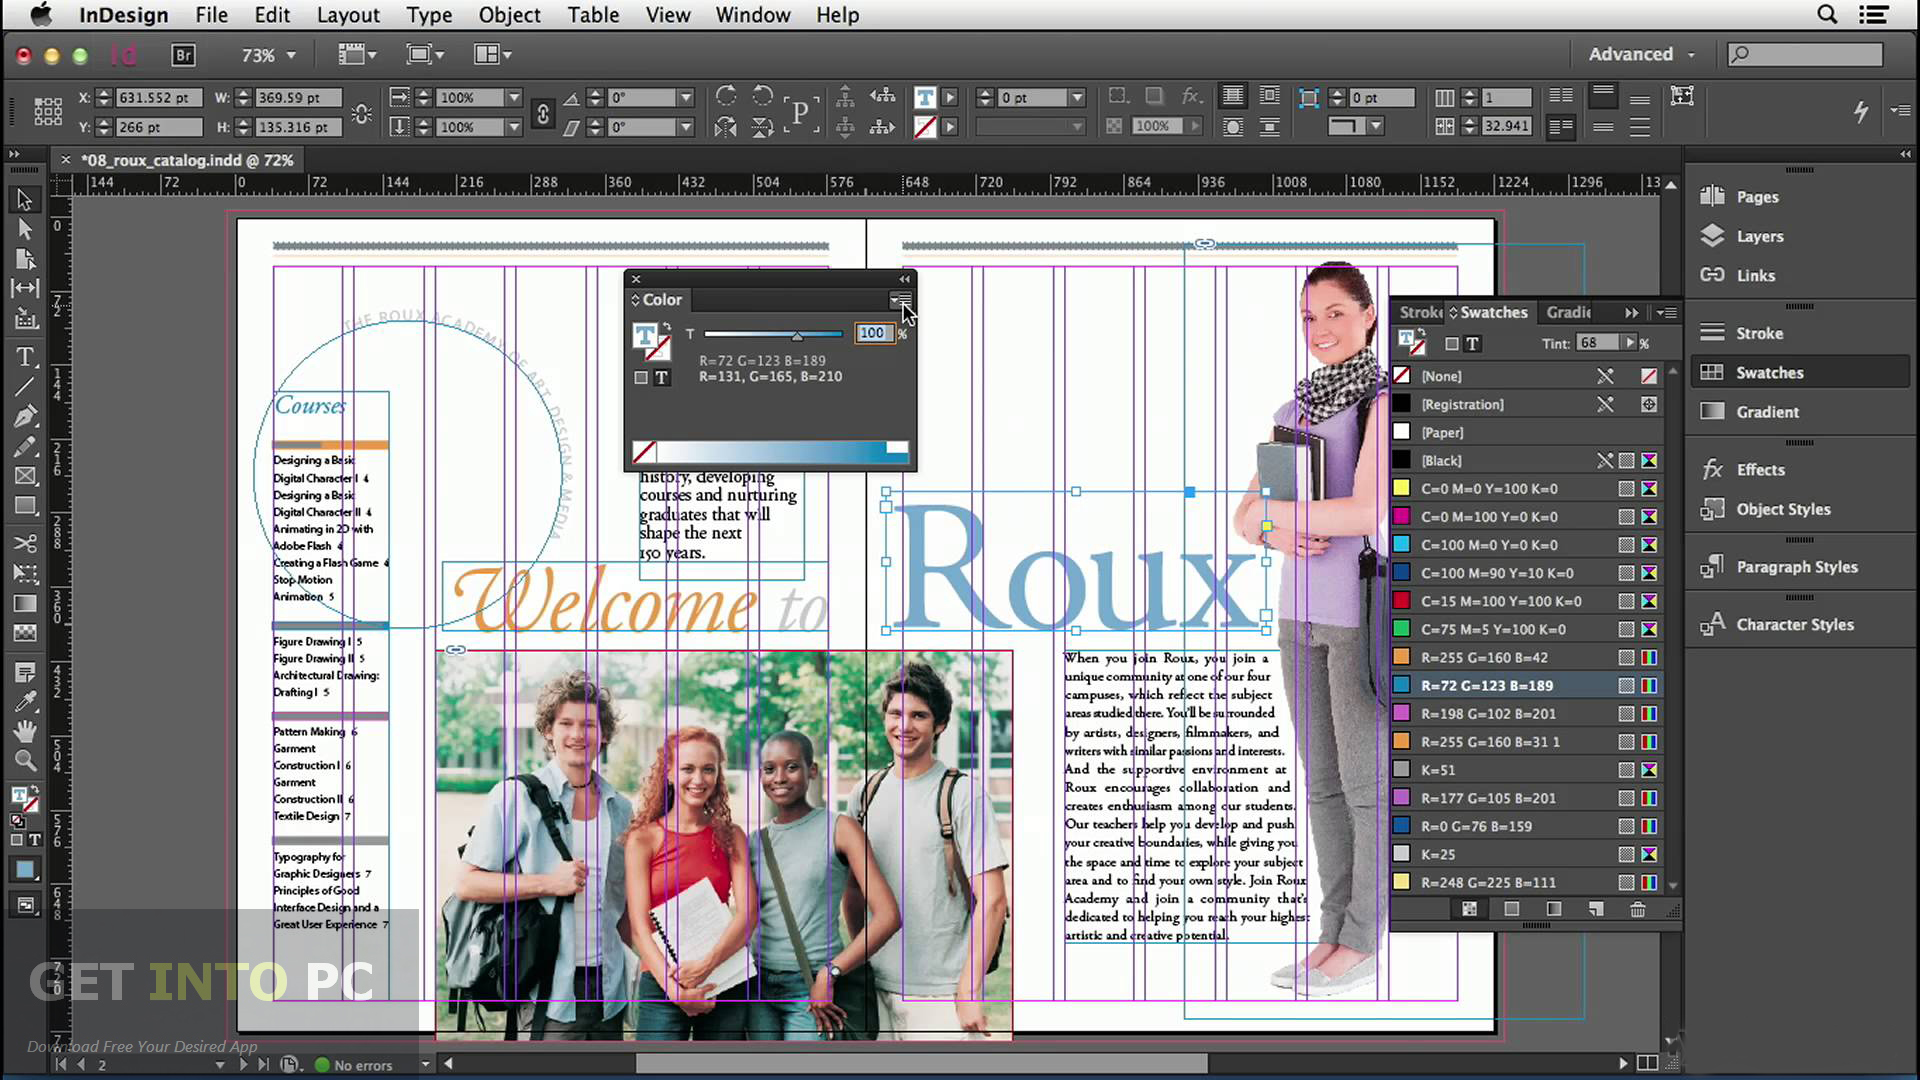 Download adobe indesign cc 2017 dmg for macos.